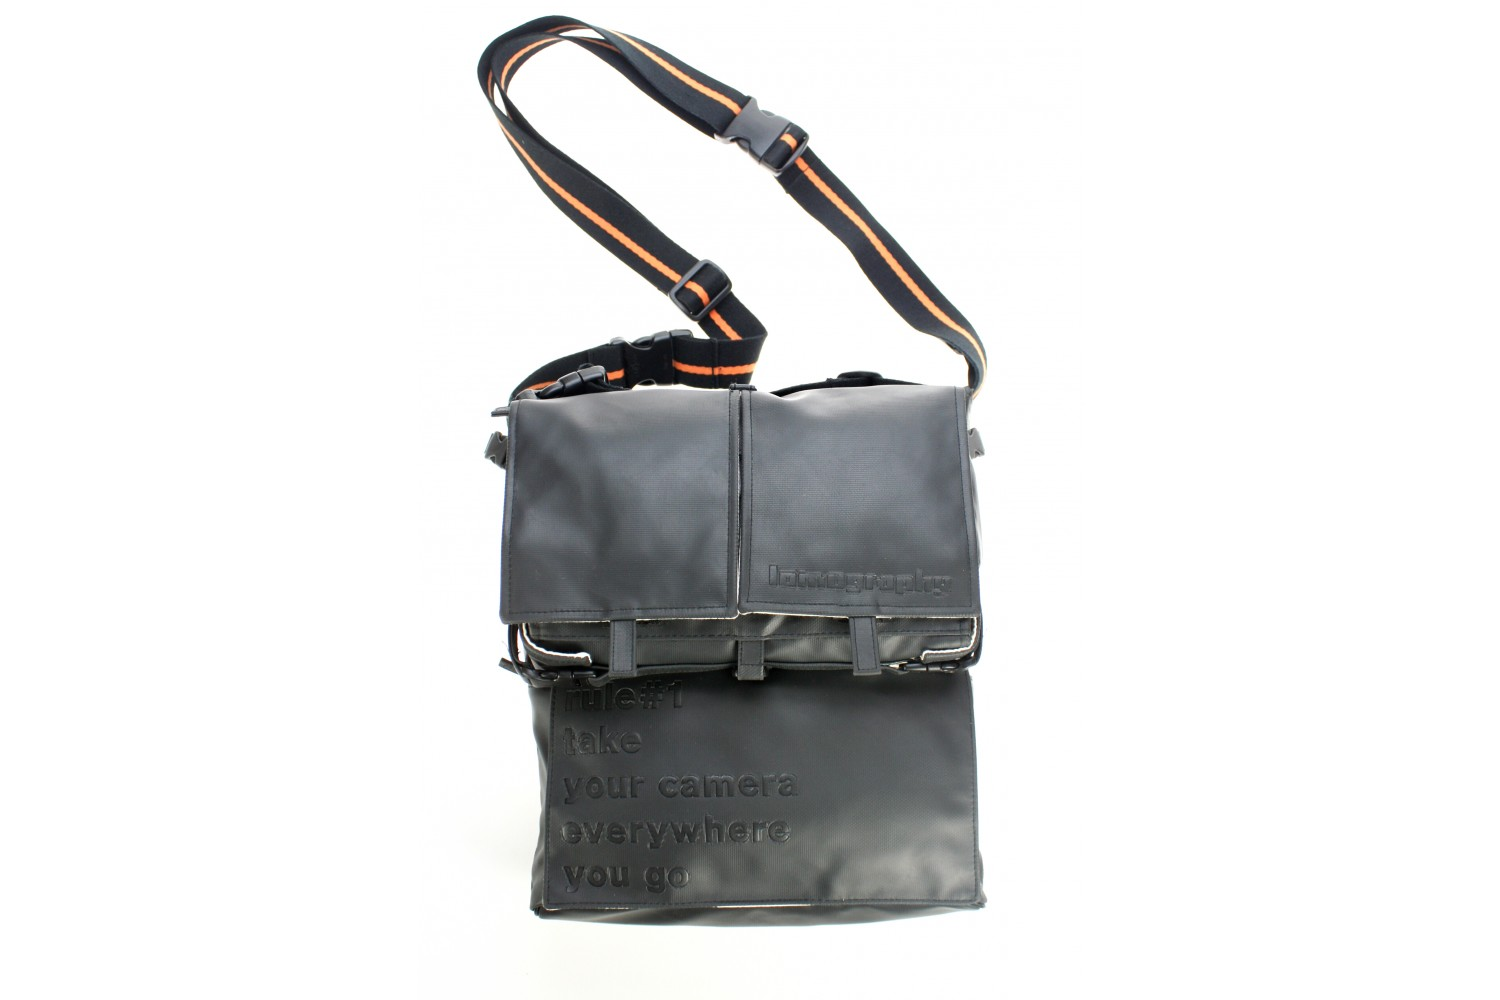 Sidekick TPE Bag